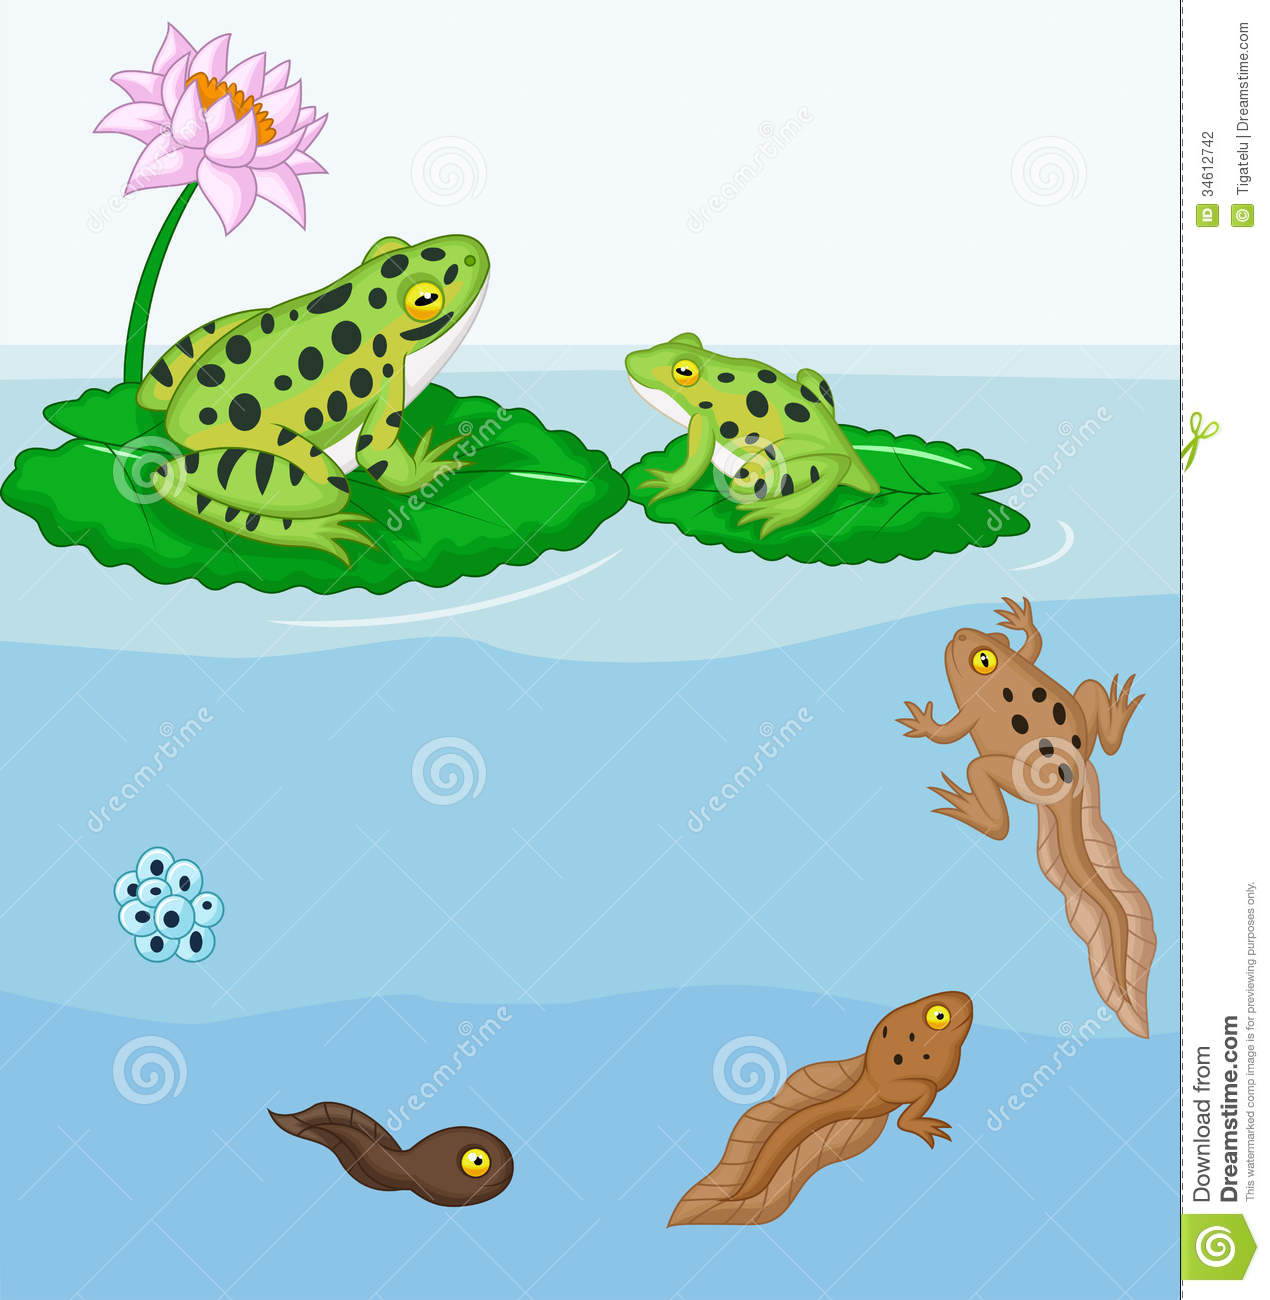 toad life cycle for kids